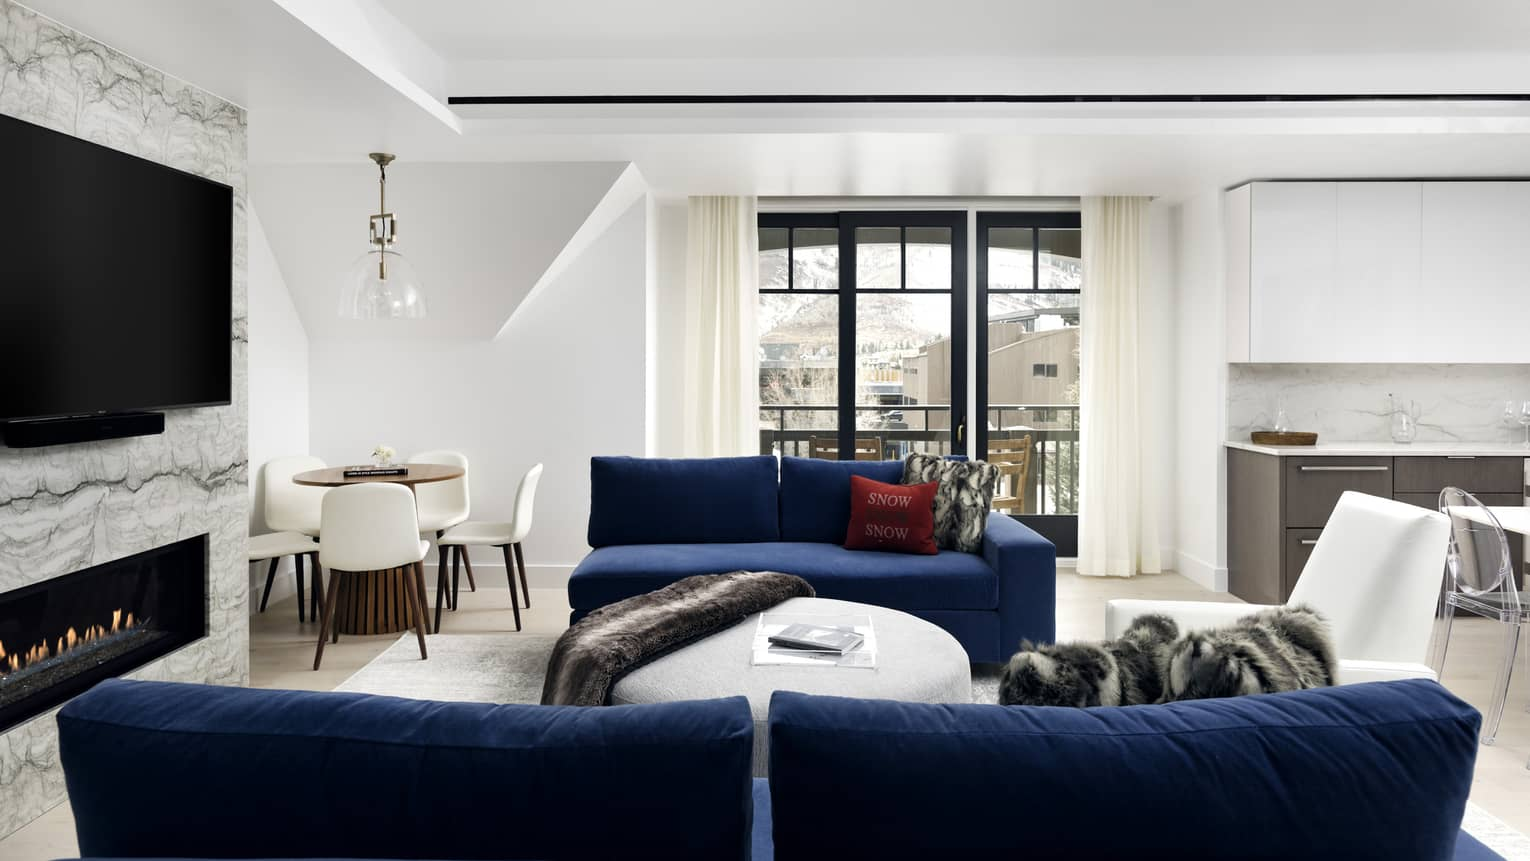 Living room with two dark blue sofas, fireplace, flat-screen TV, windows, white walls